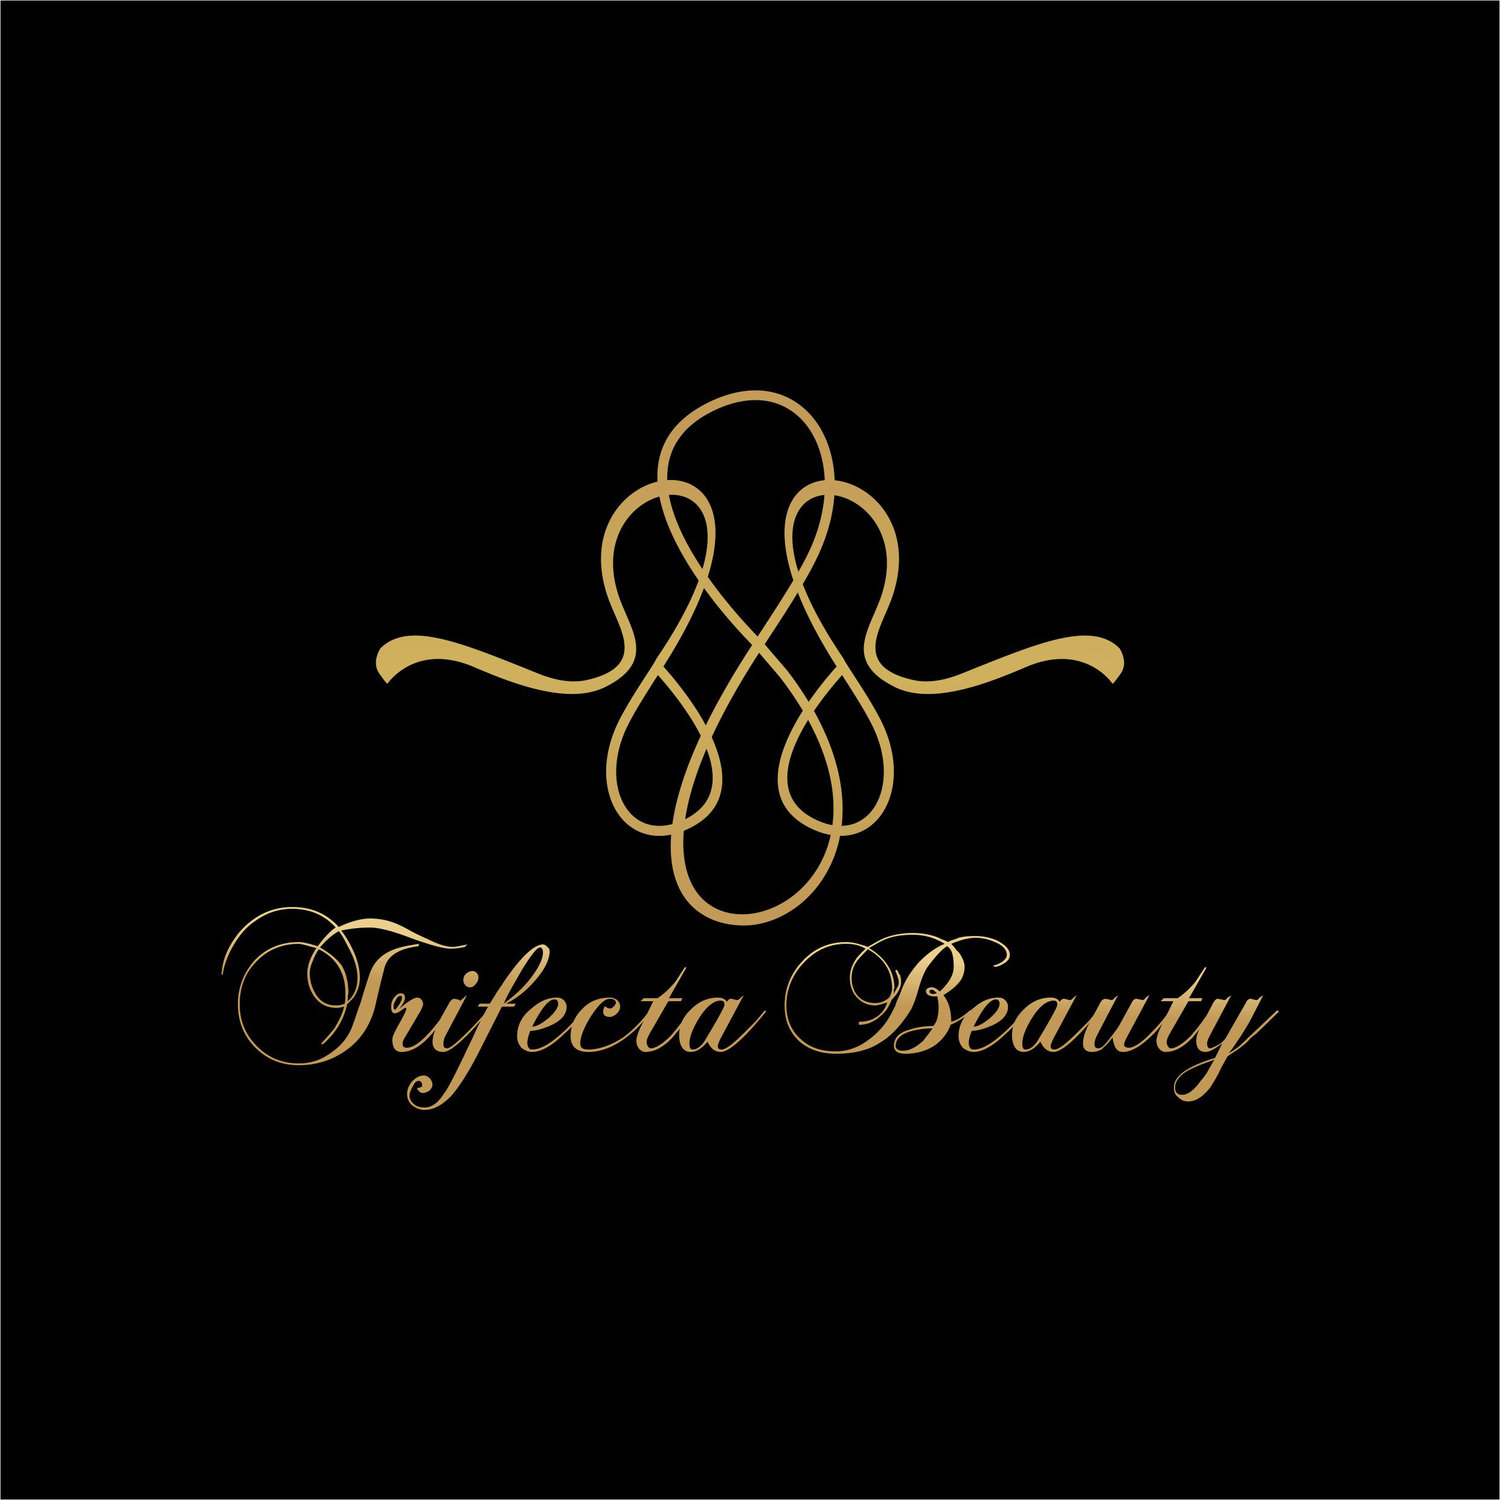 Trifecta Beauty Inc.